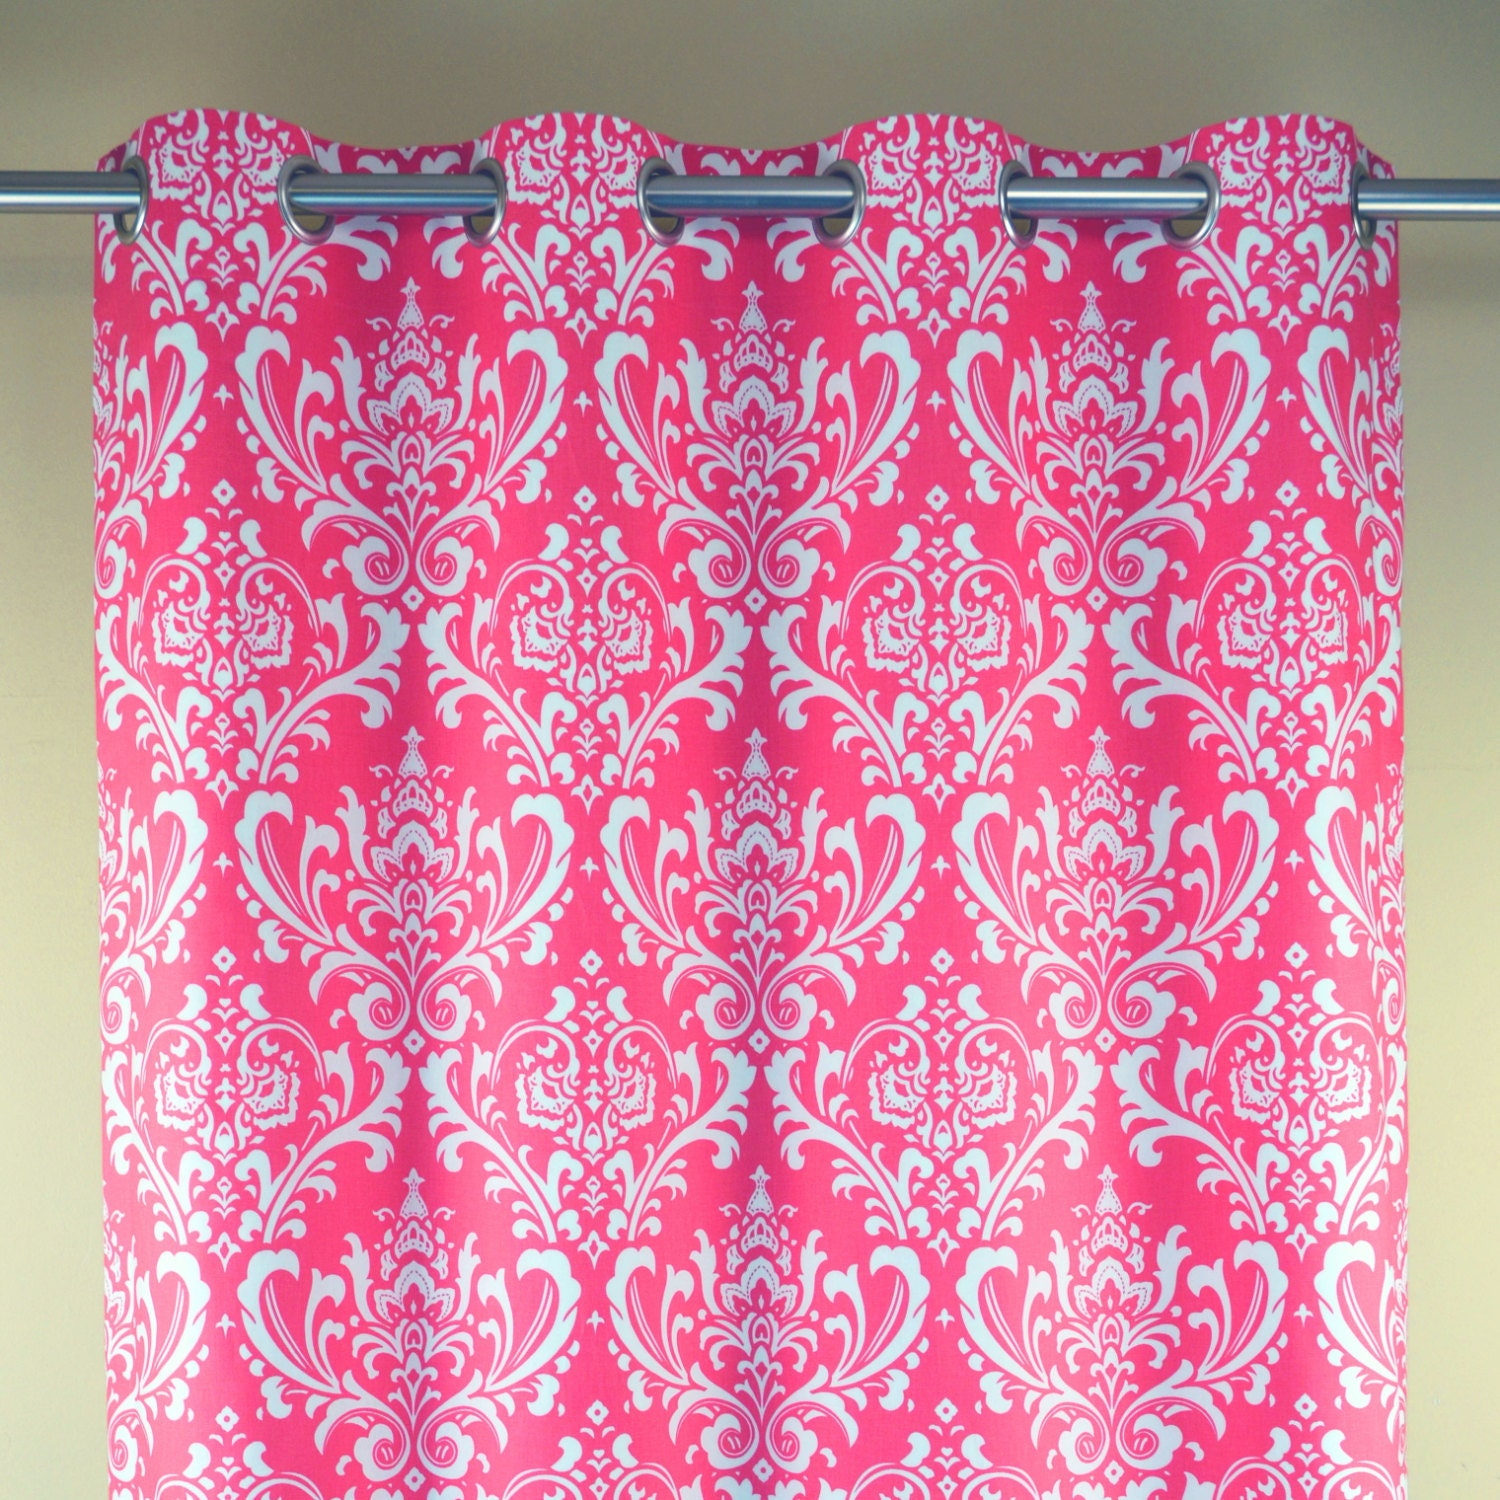 candy hot pink white ozborne damask curtains grommet 84 96